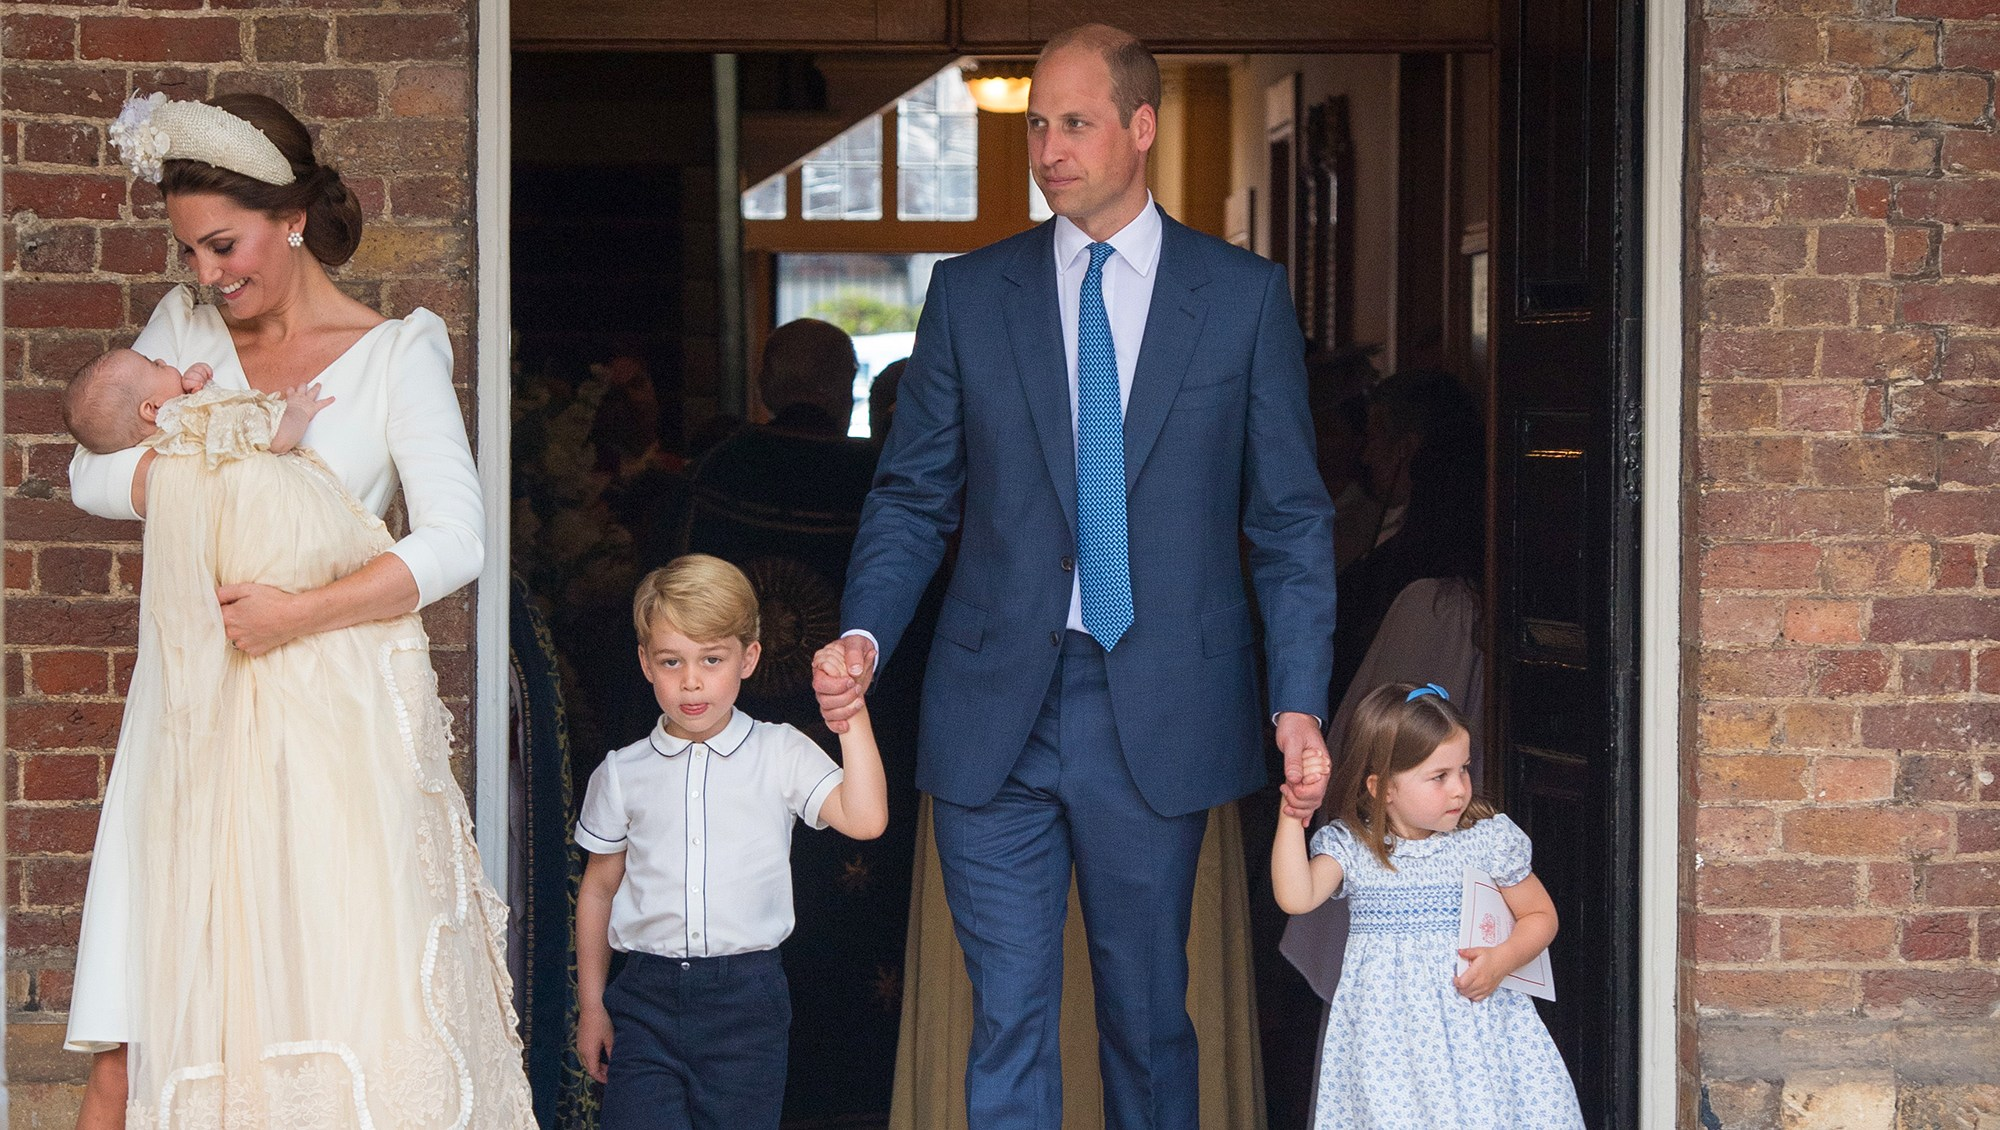 Catherine Duchess of Cambridge and Prince William, Duke of Cambridge with their children Prince George, Princess Charlotte and Prince Louis after Prince Louis' christening at St James's Palace on July 09, 2018 in London, England.